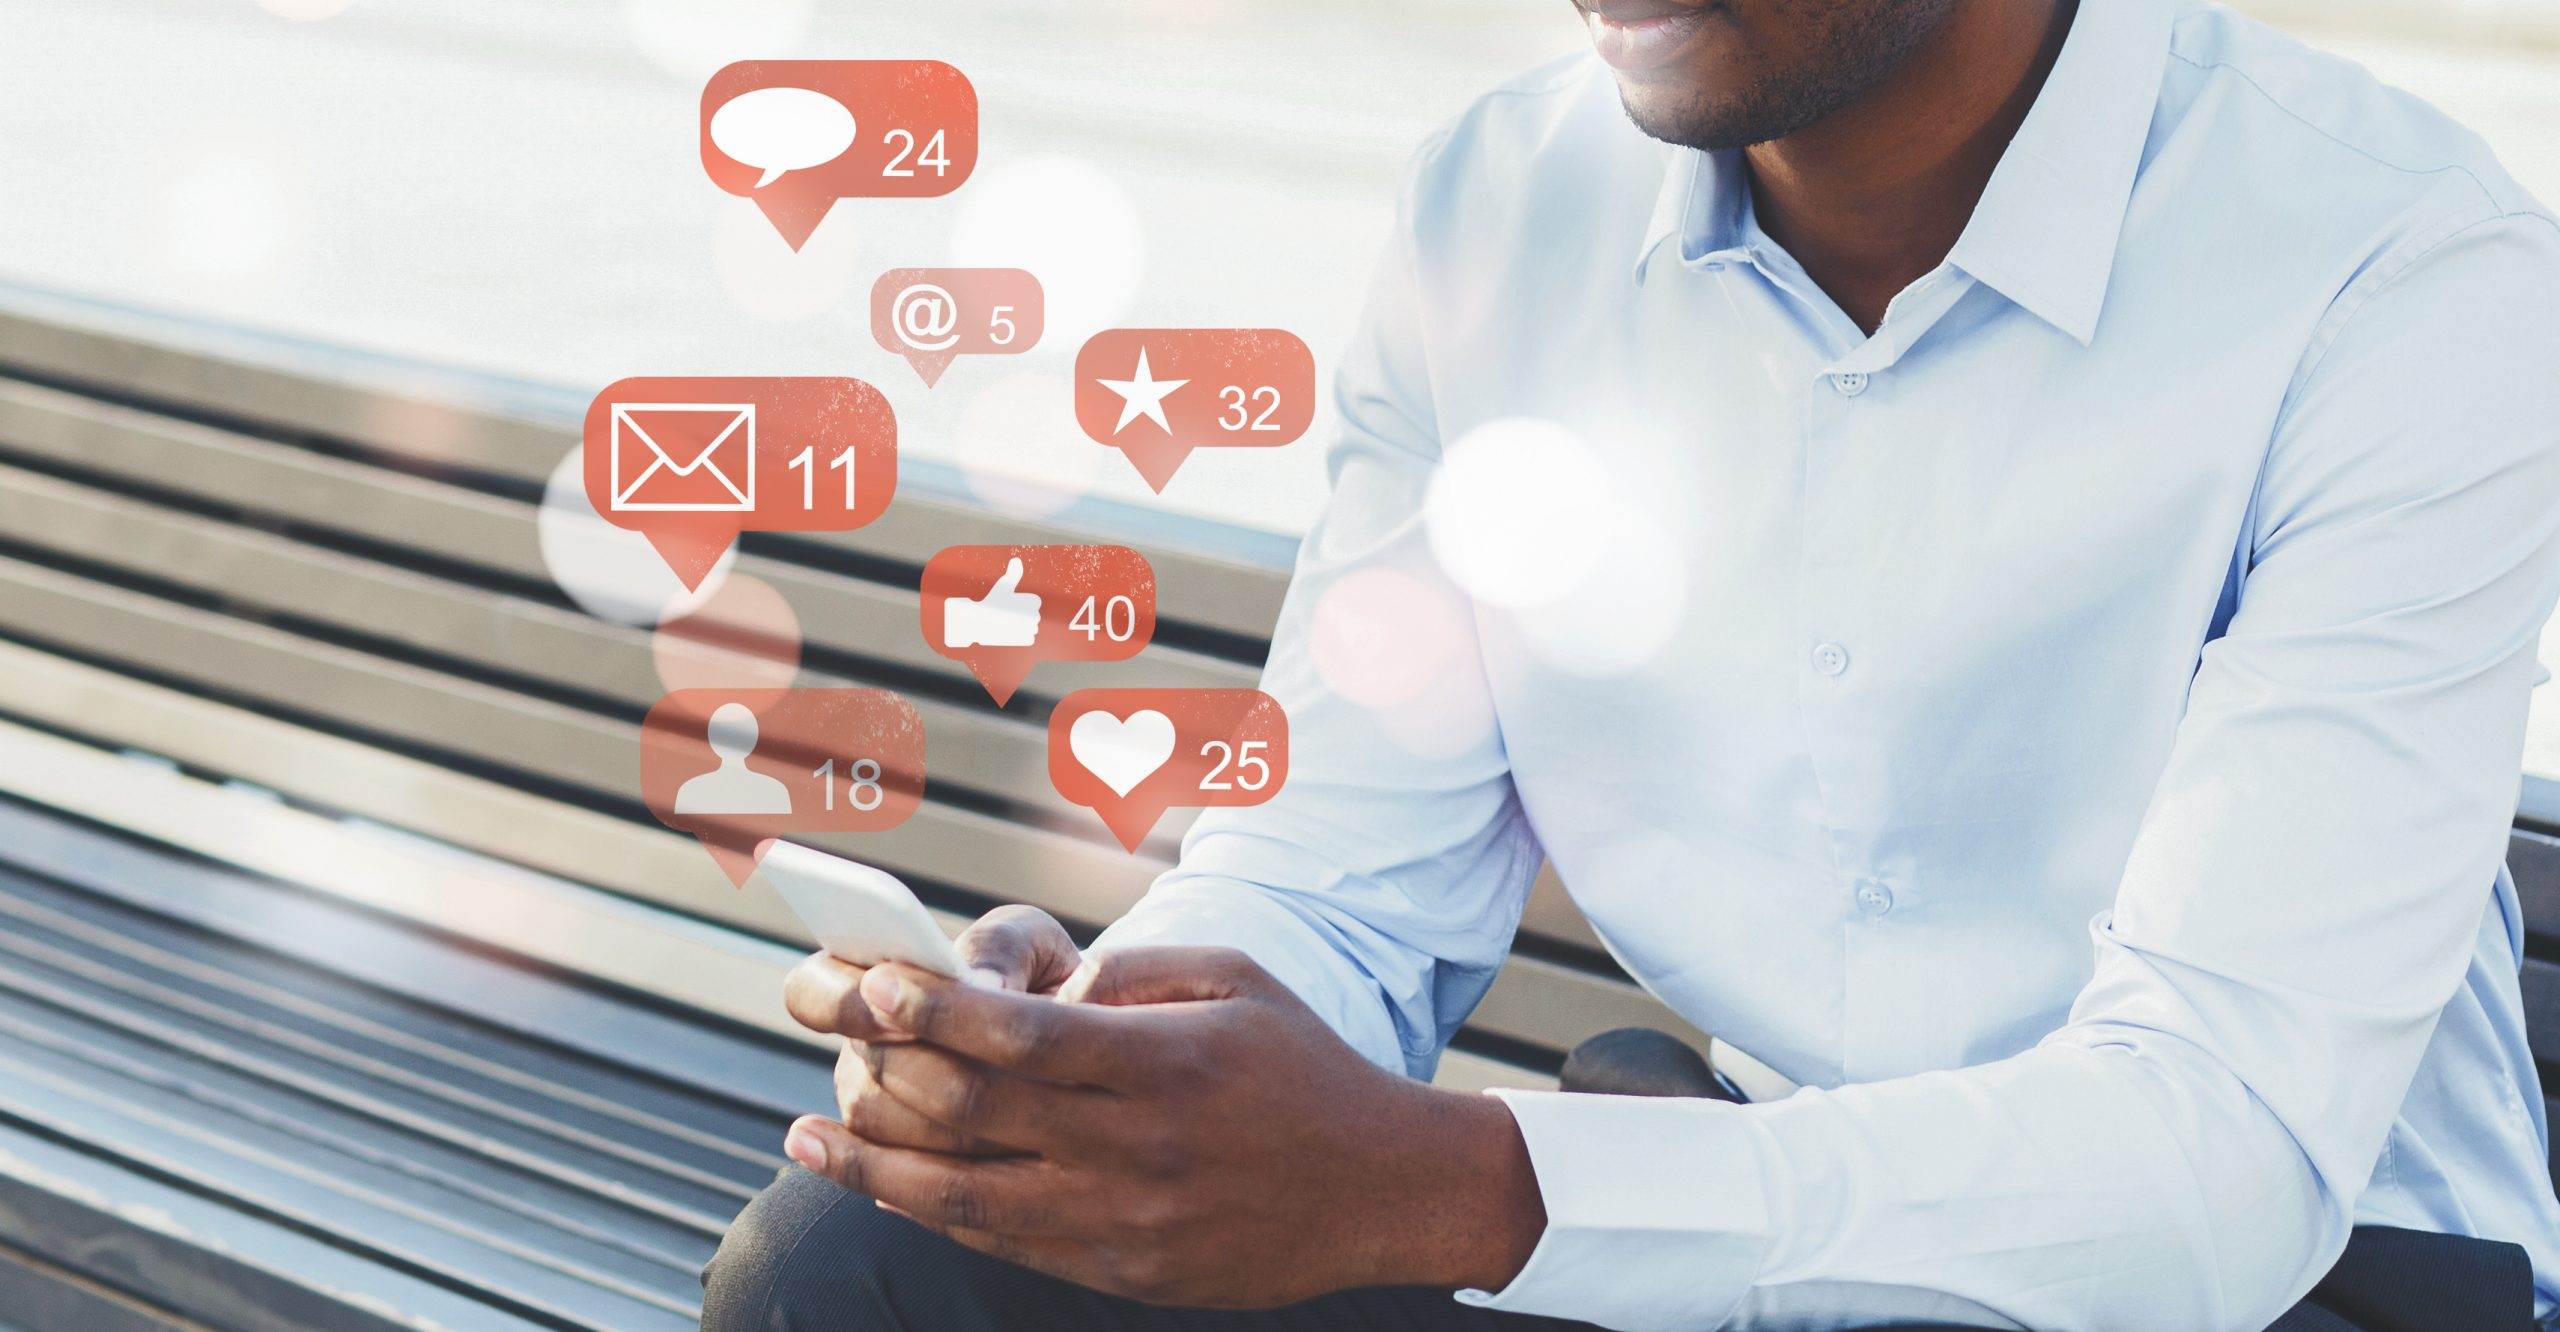 Three Types of Social Media Marketing You Shouldn't Ignore